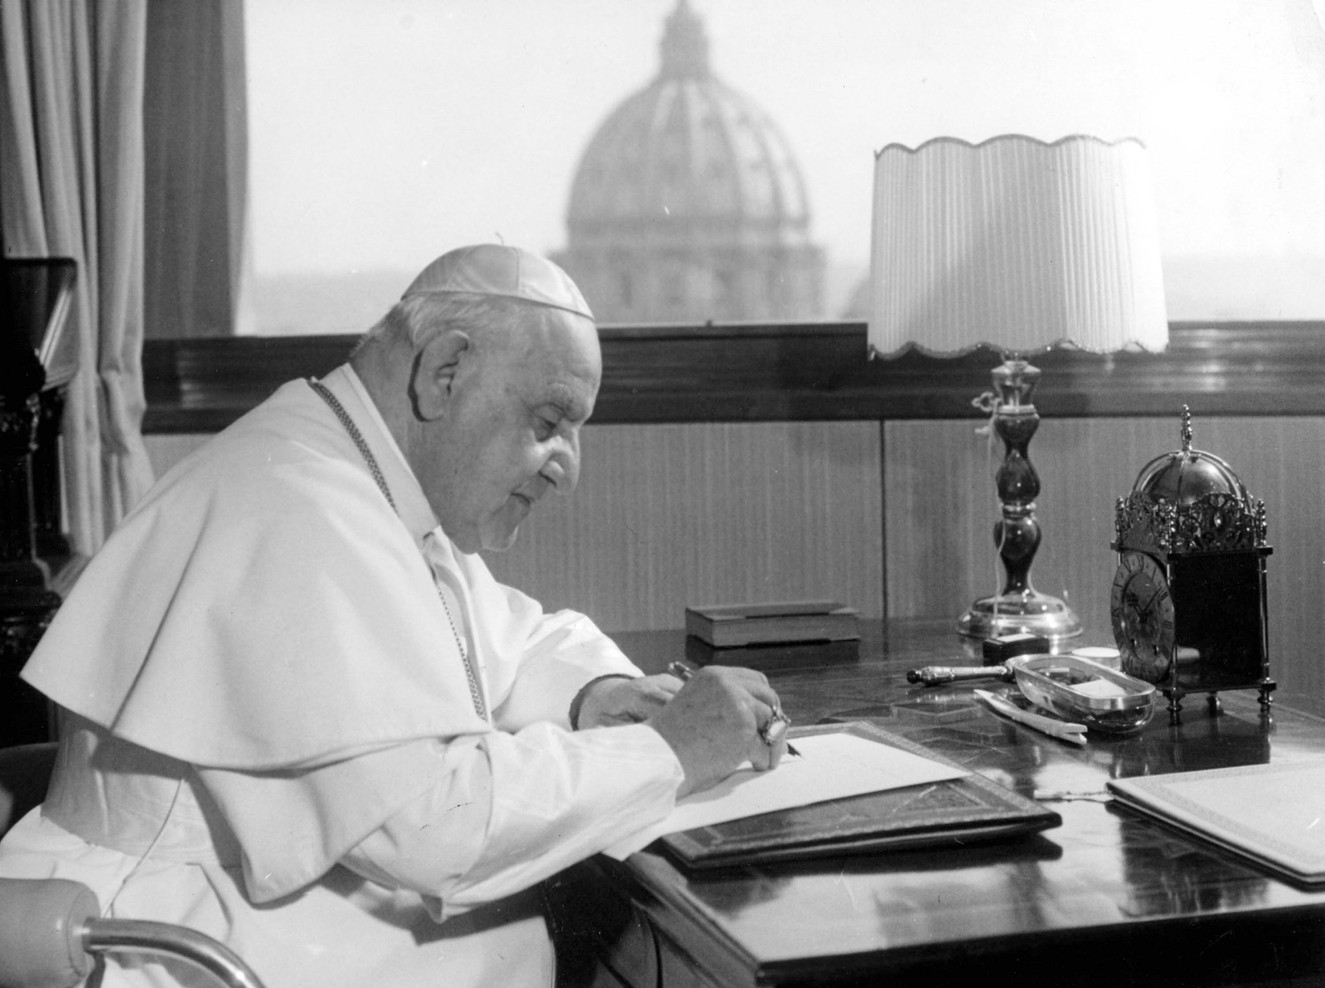 Vatican Council II, held in the early 1960s, addressed relations between the Catholic Church and the modern world. It brought about radical changes in the Church and in all communities of religious men and women. Pope John XXIII, shown here, initiated the council's far-reaching changes.